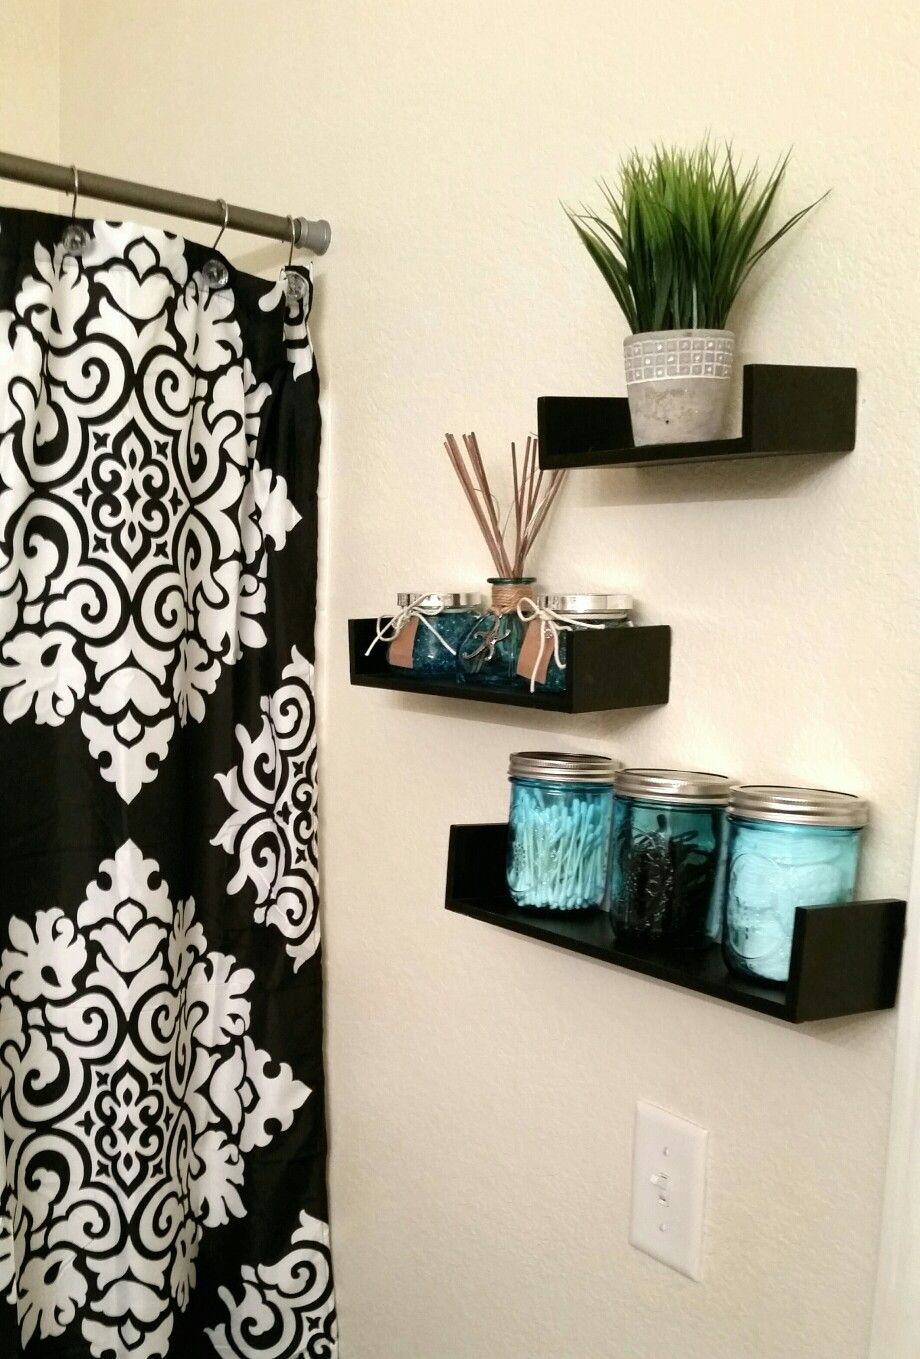 College Apartment Bathroom Decorating Ideas my daughter's college apartment bathroom shelf wall #donebyk